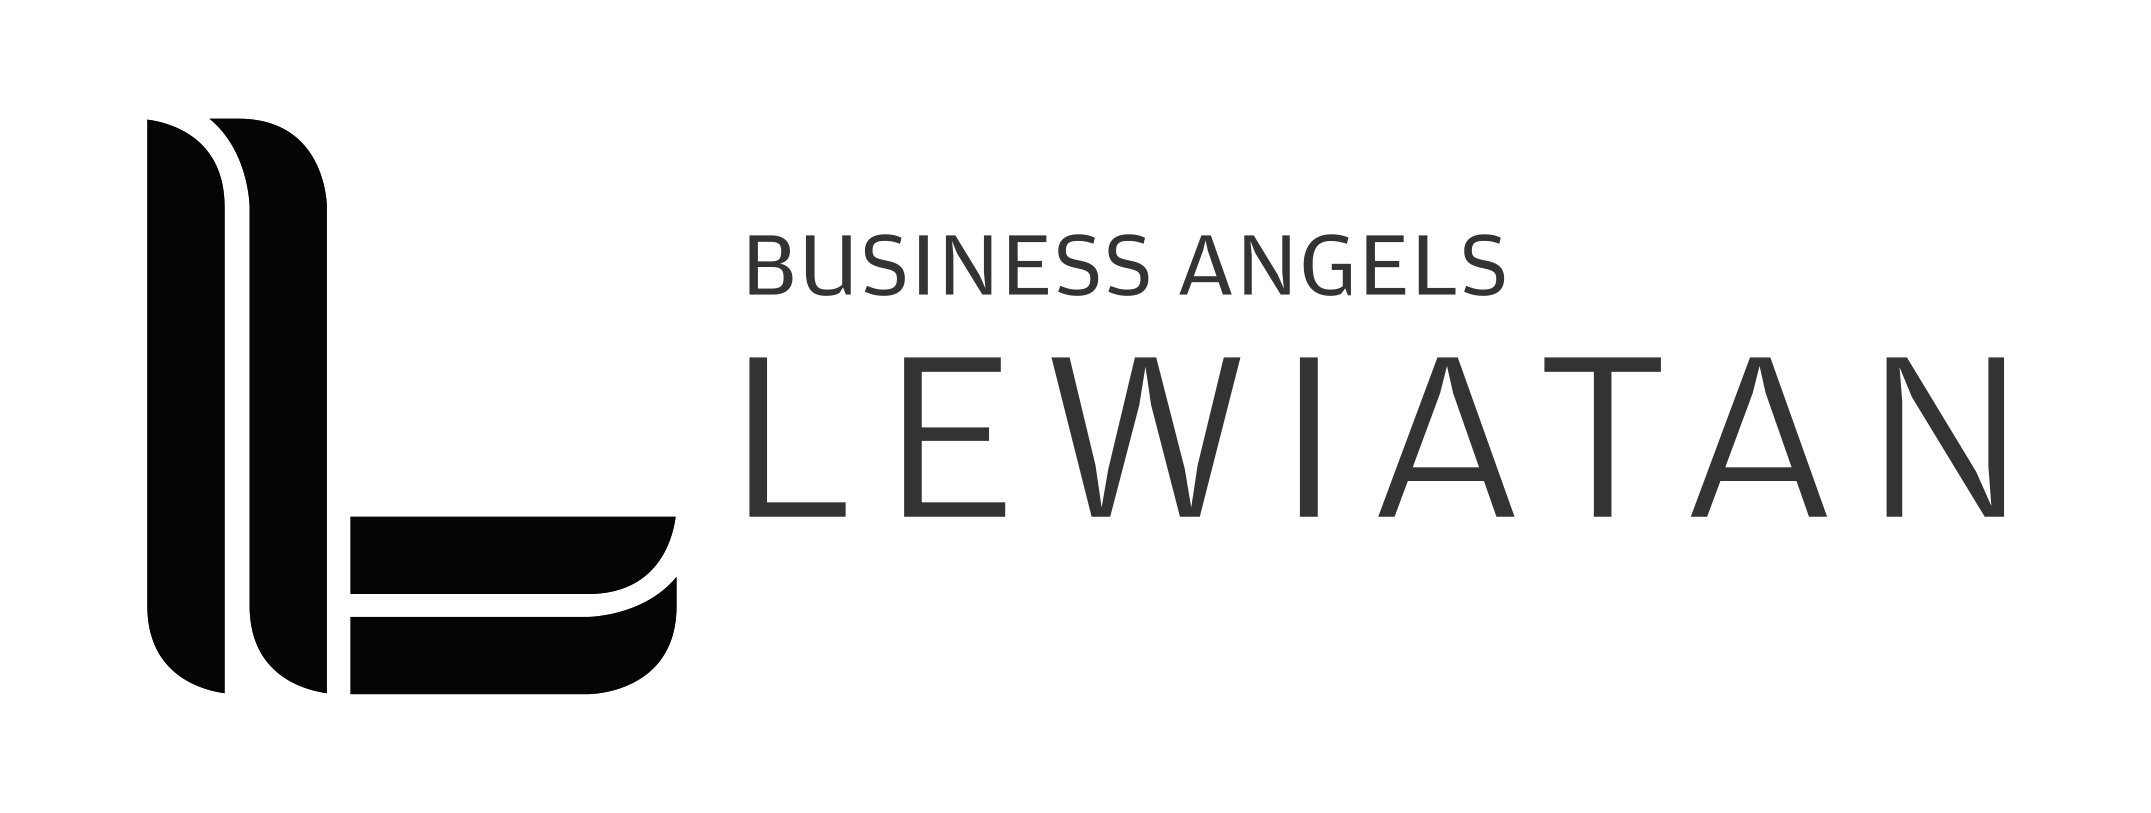 Lewiatan Business Angels.jpg